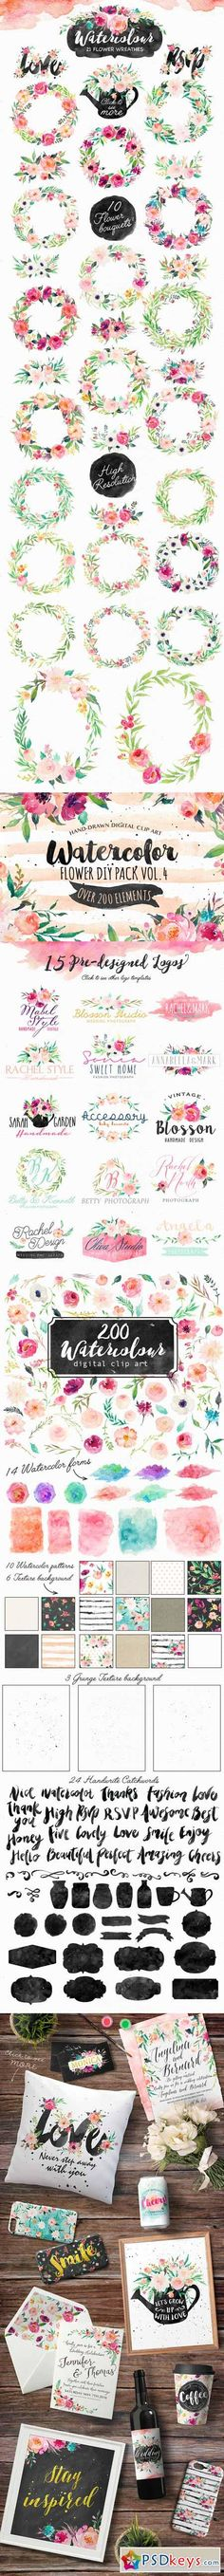 Watercolor DIY pack Vol.4 358935